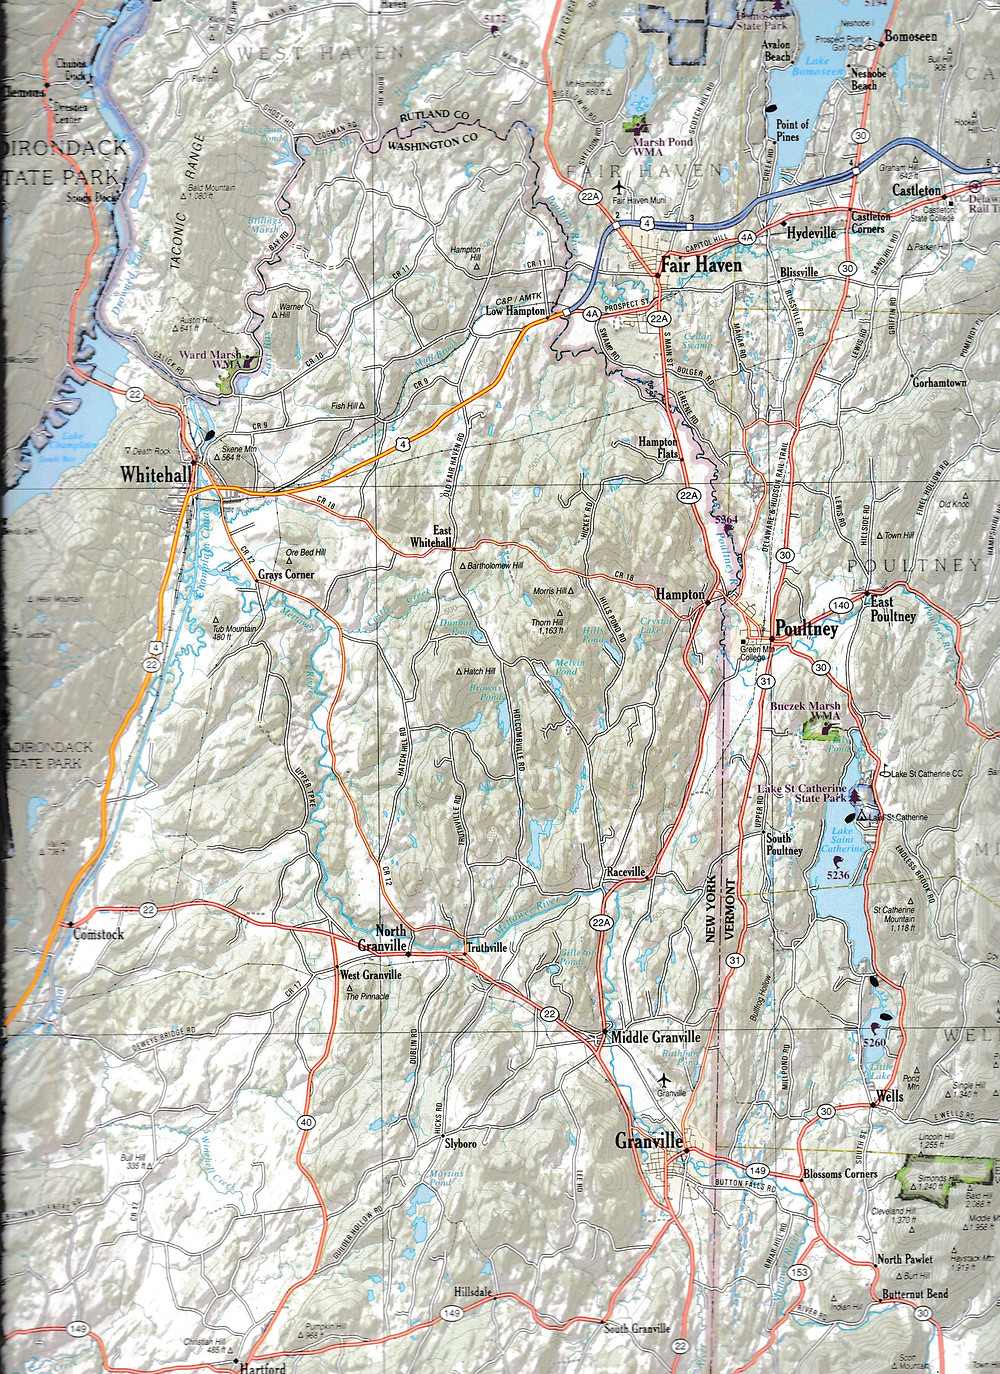 Sample from the New Hampshire/Vermont Atlas & Gazetteer